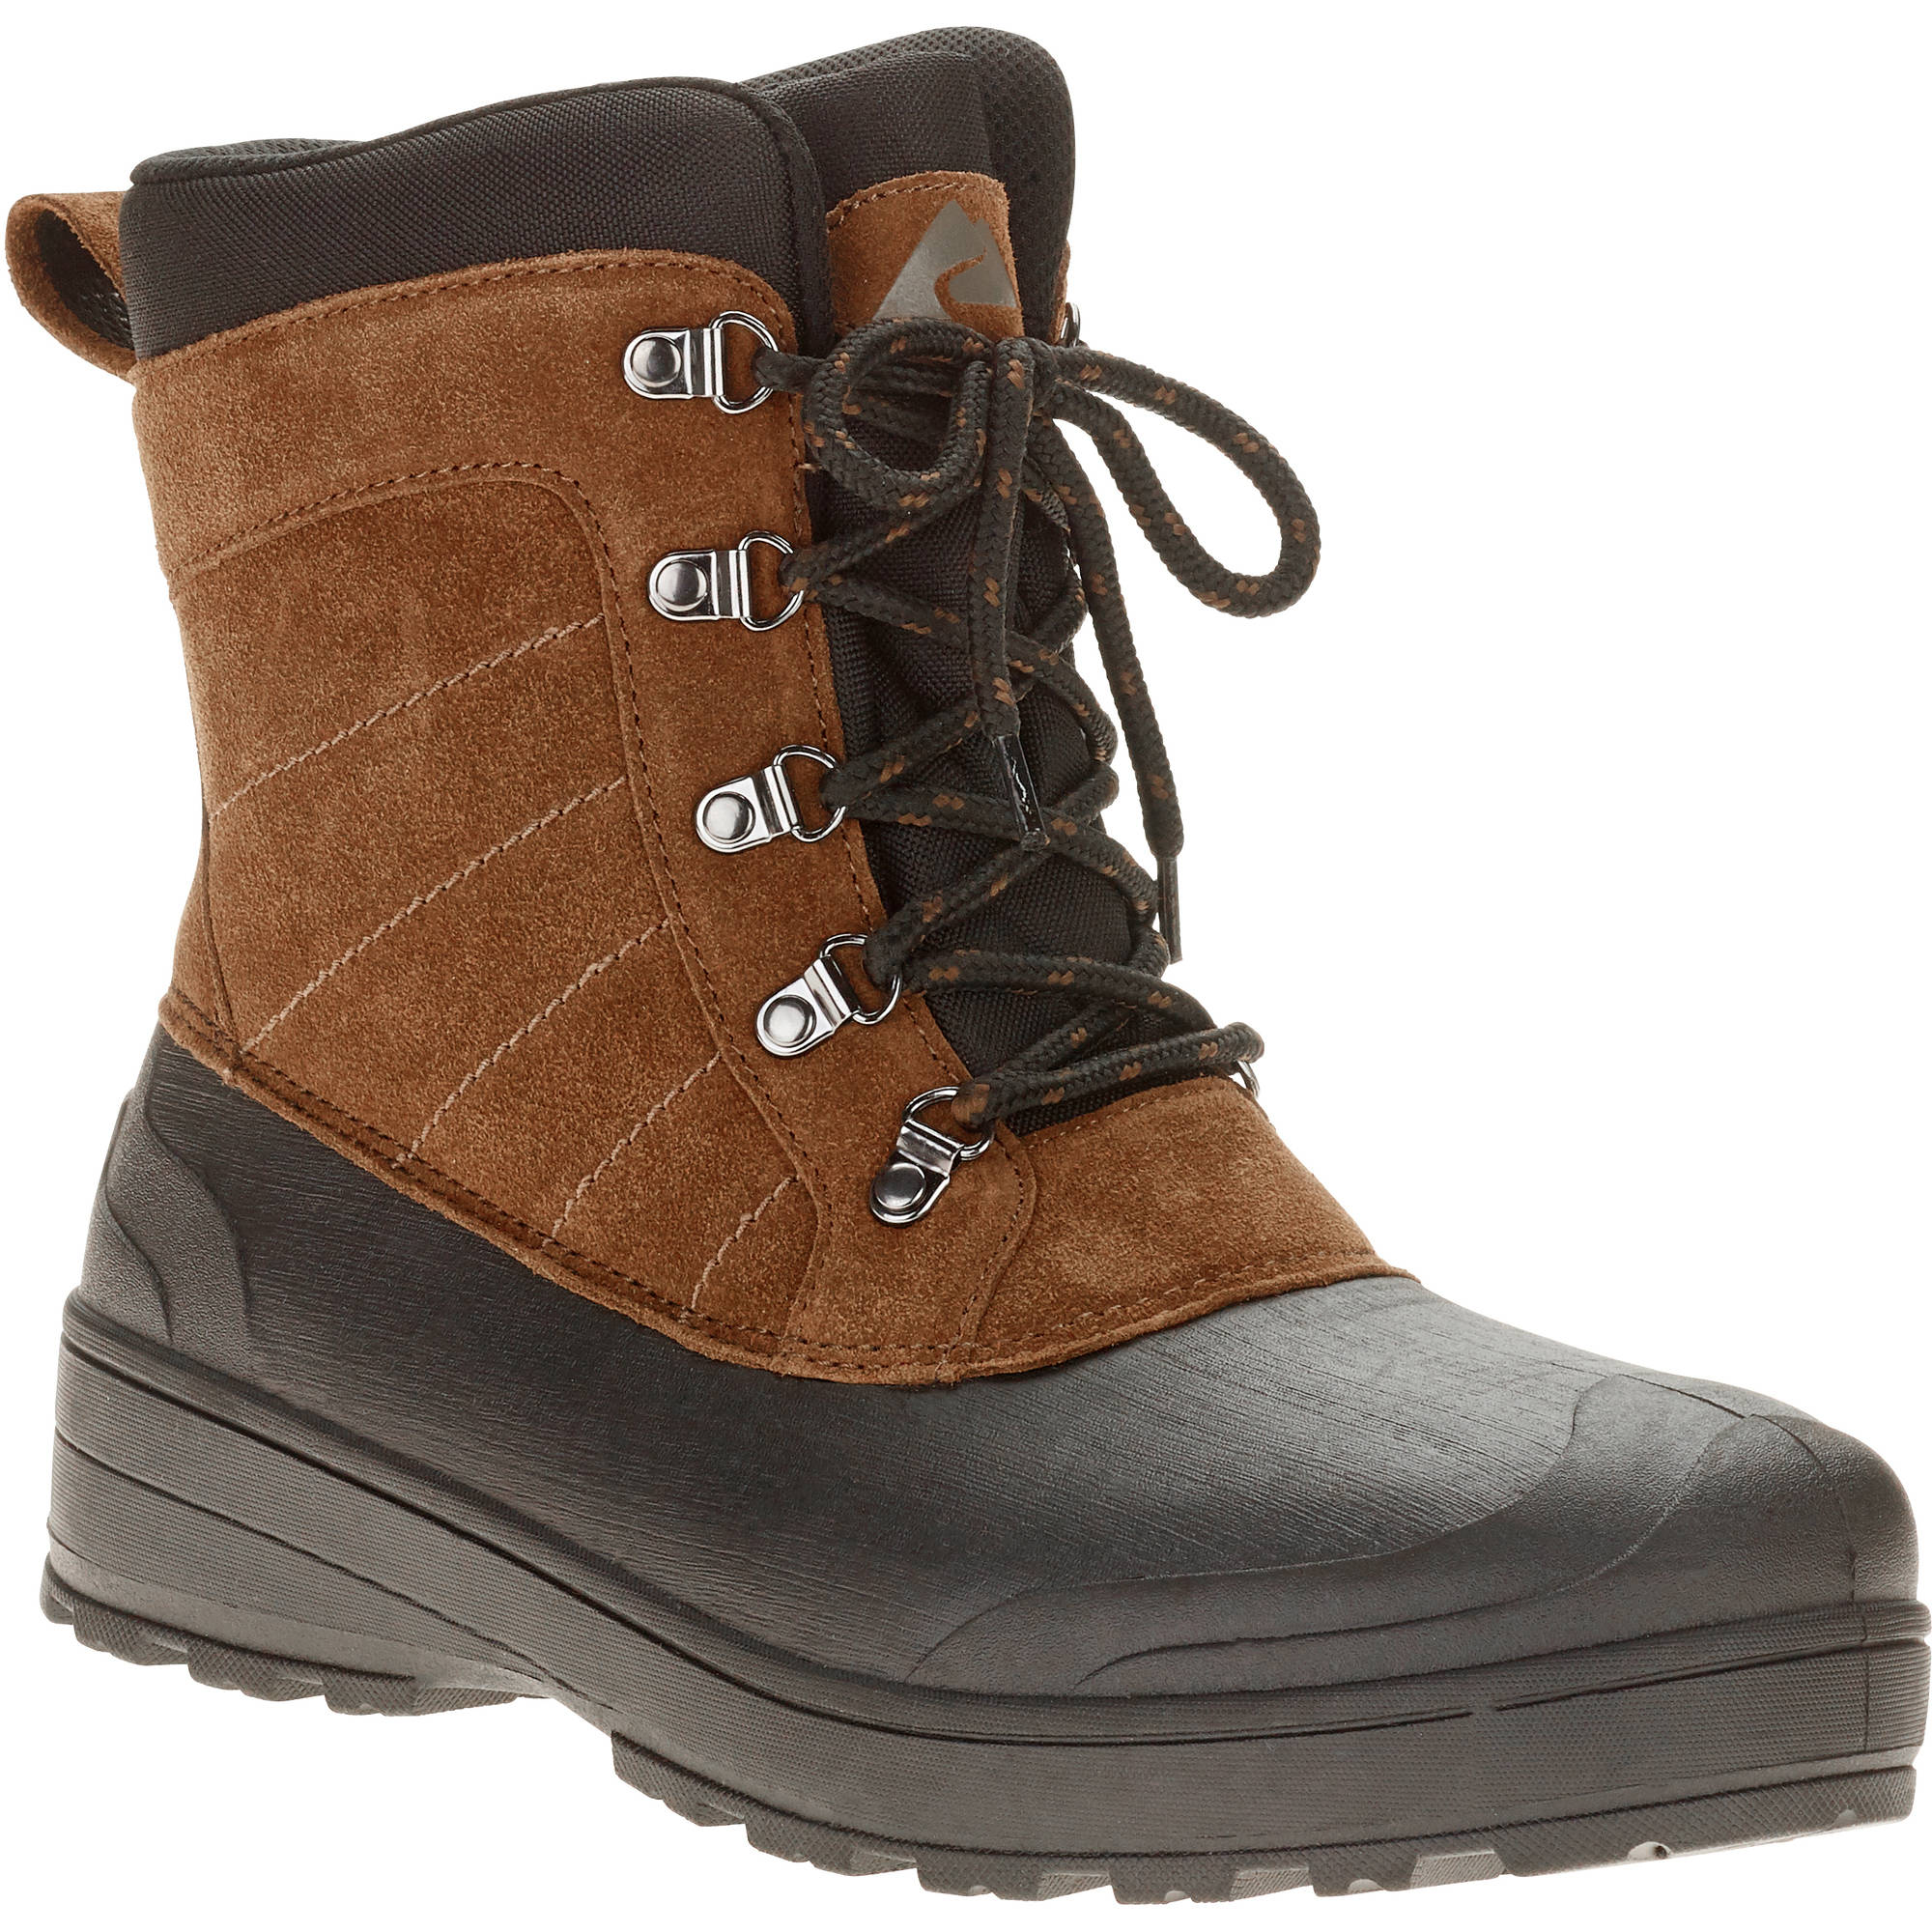 Ozark Trail Men's Winter Boot